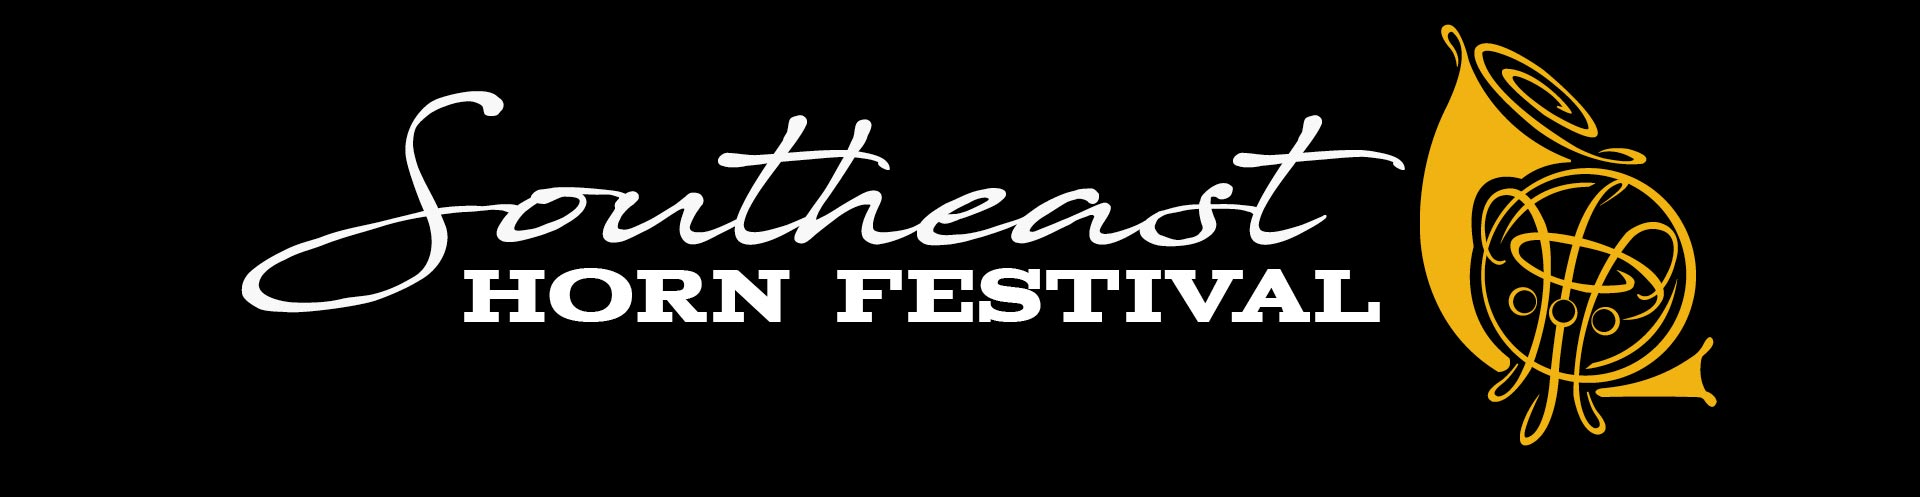 Southeast Horn Festival banner with a black background and gold text.